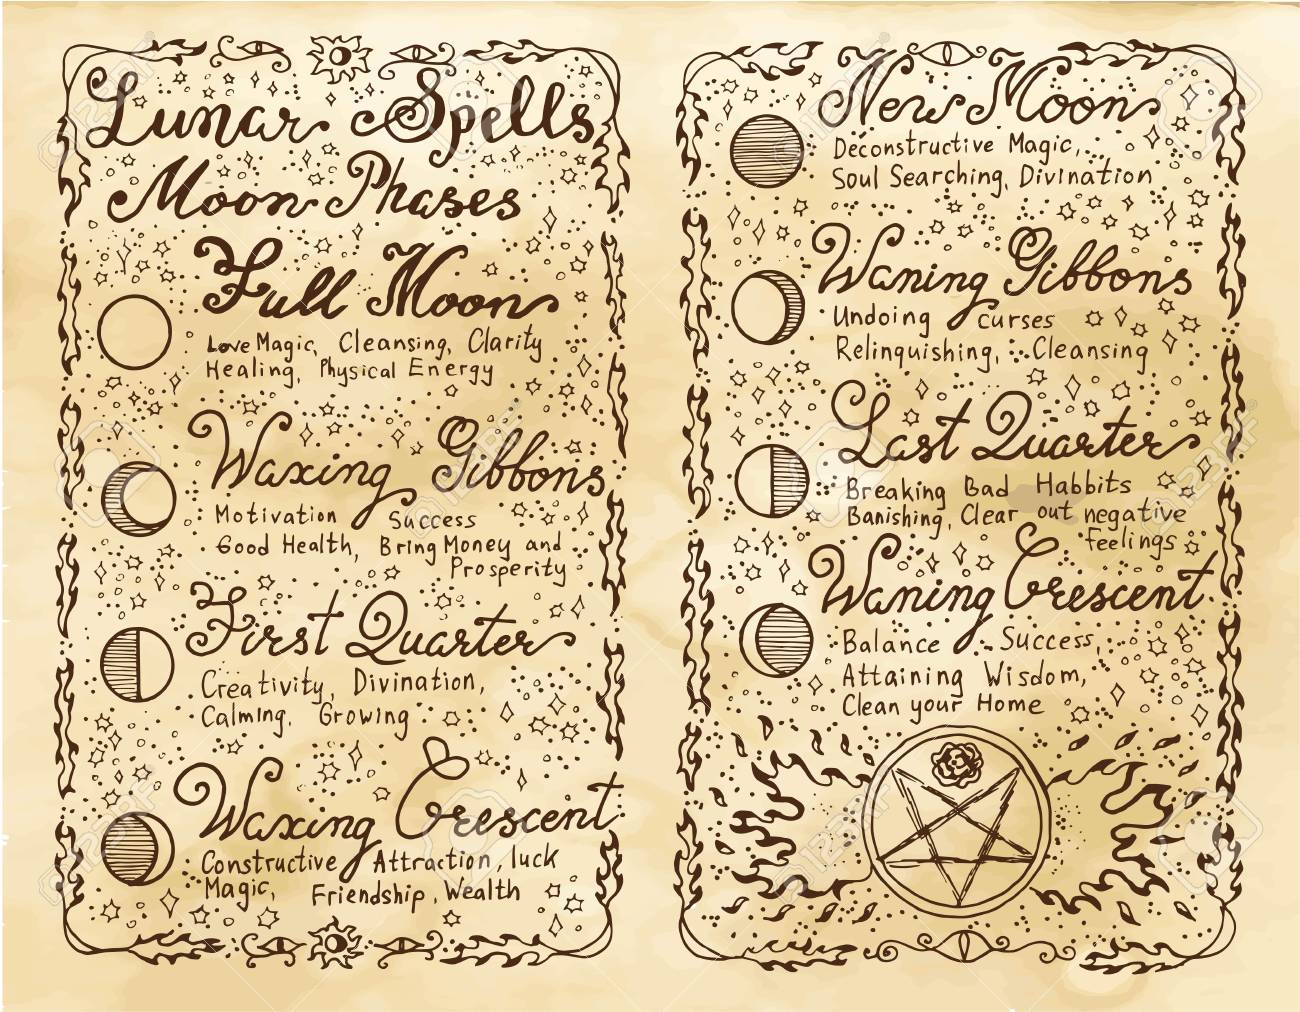 Old pages with lunar magic spells  Occult, esoteric, divination